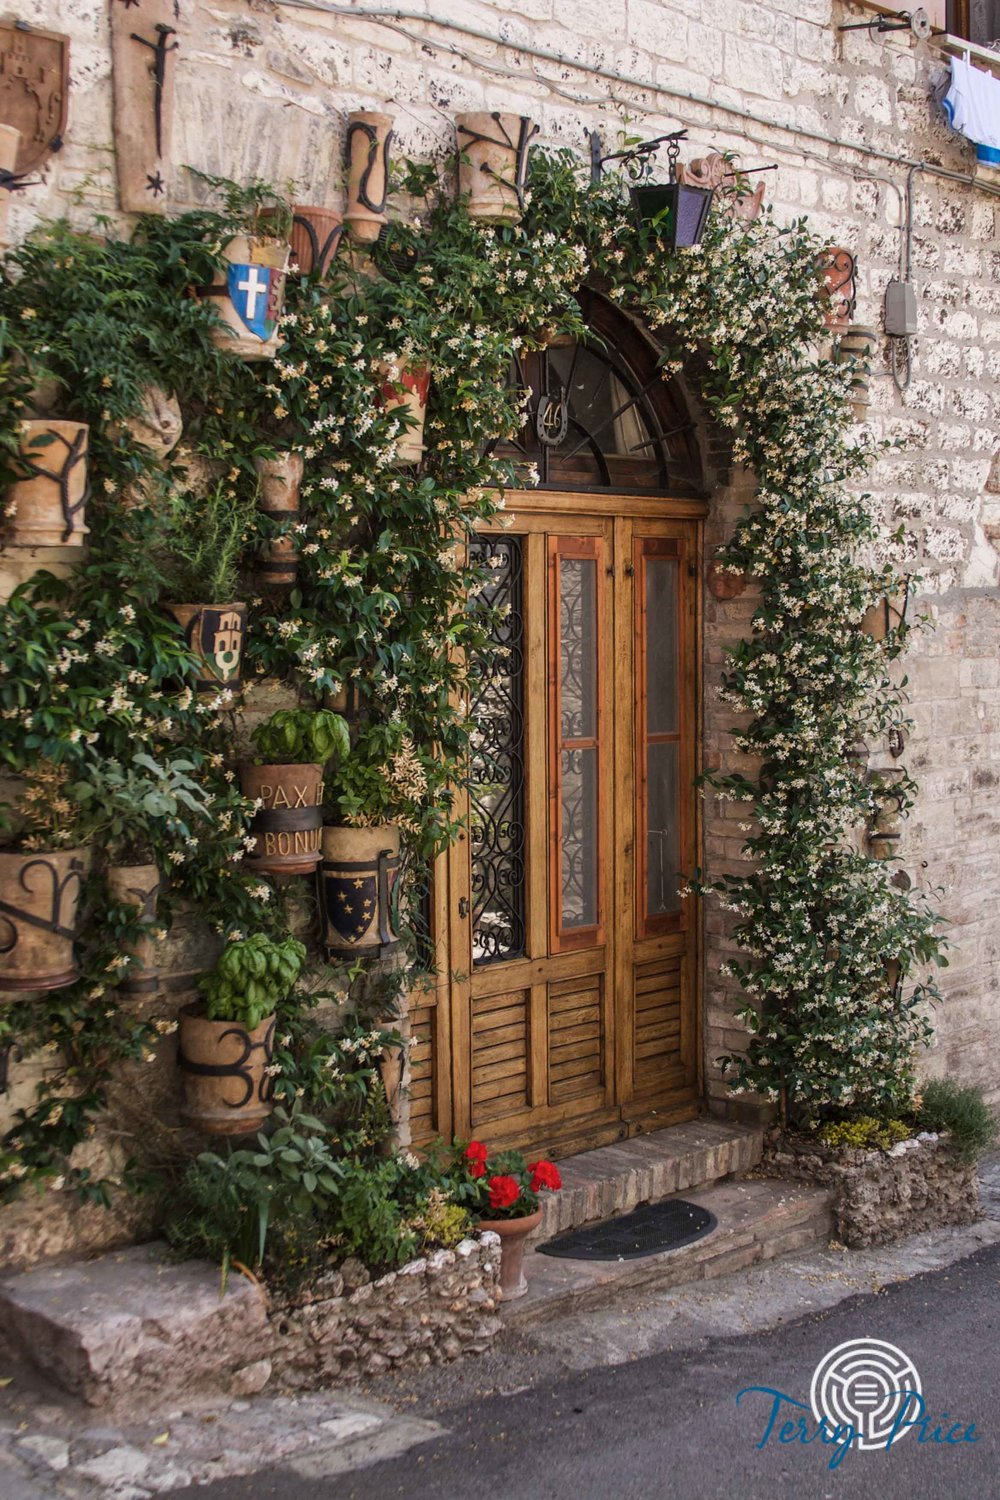 Doorway in Assisi  1362.jpg